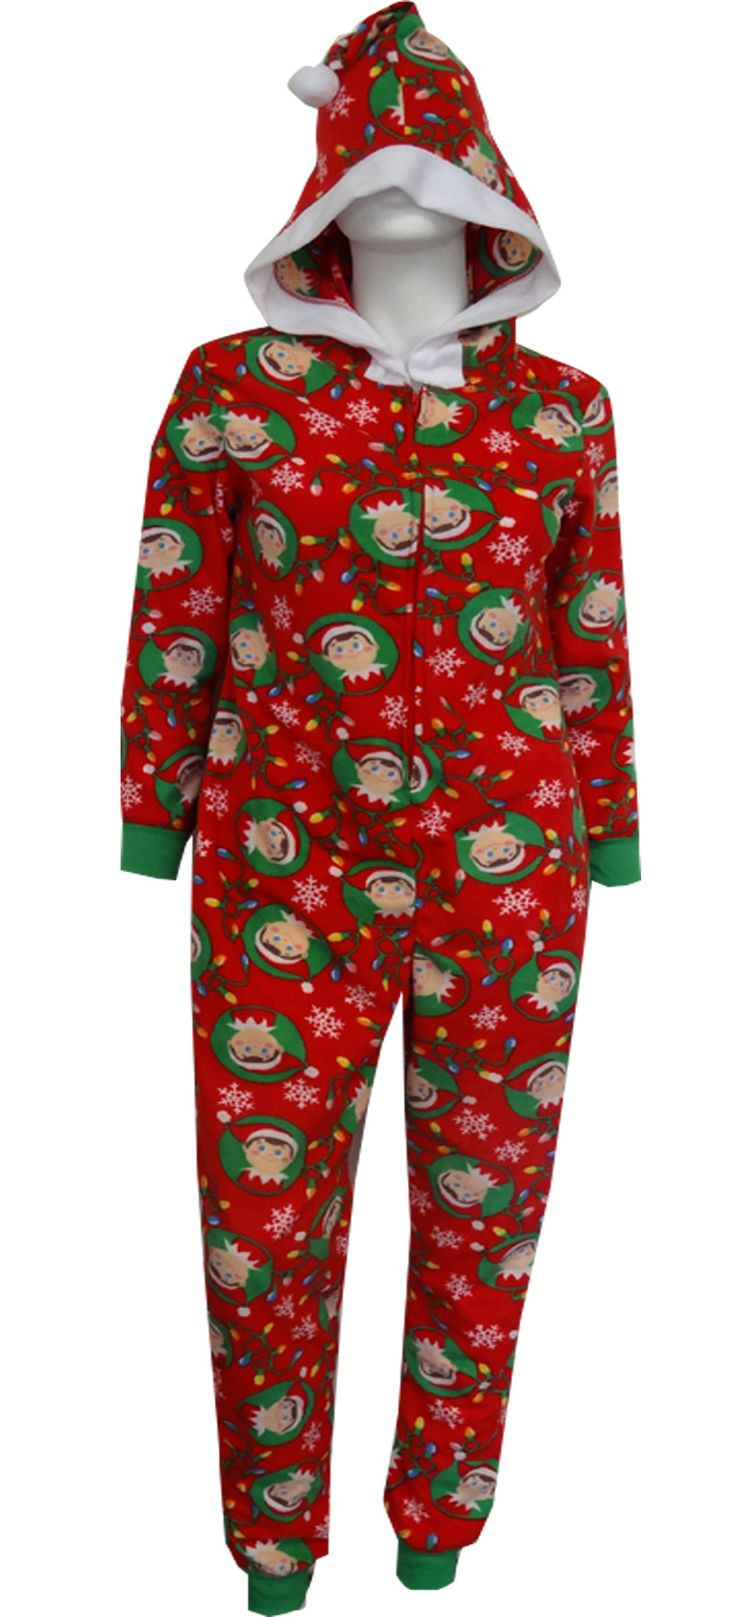 23 best Christmas Footed Pajamas for Adults images on